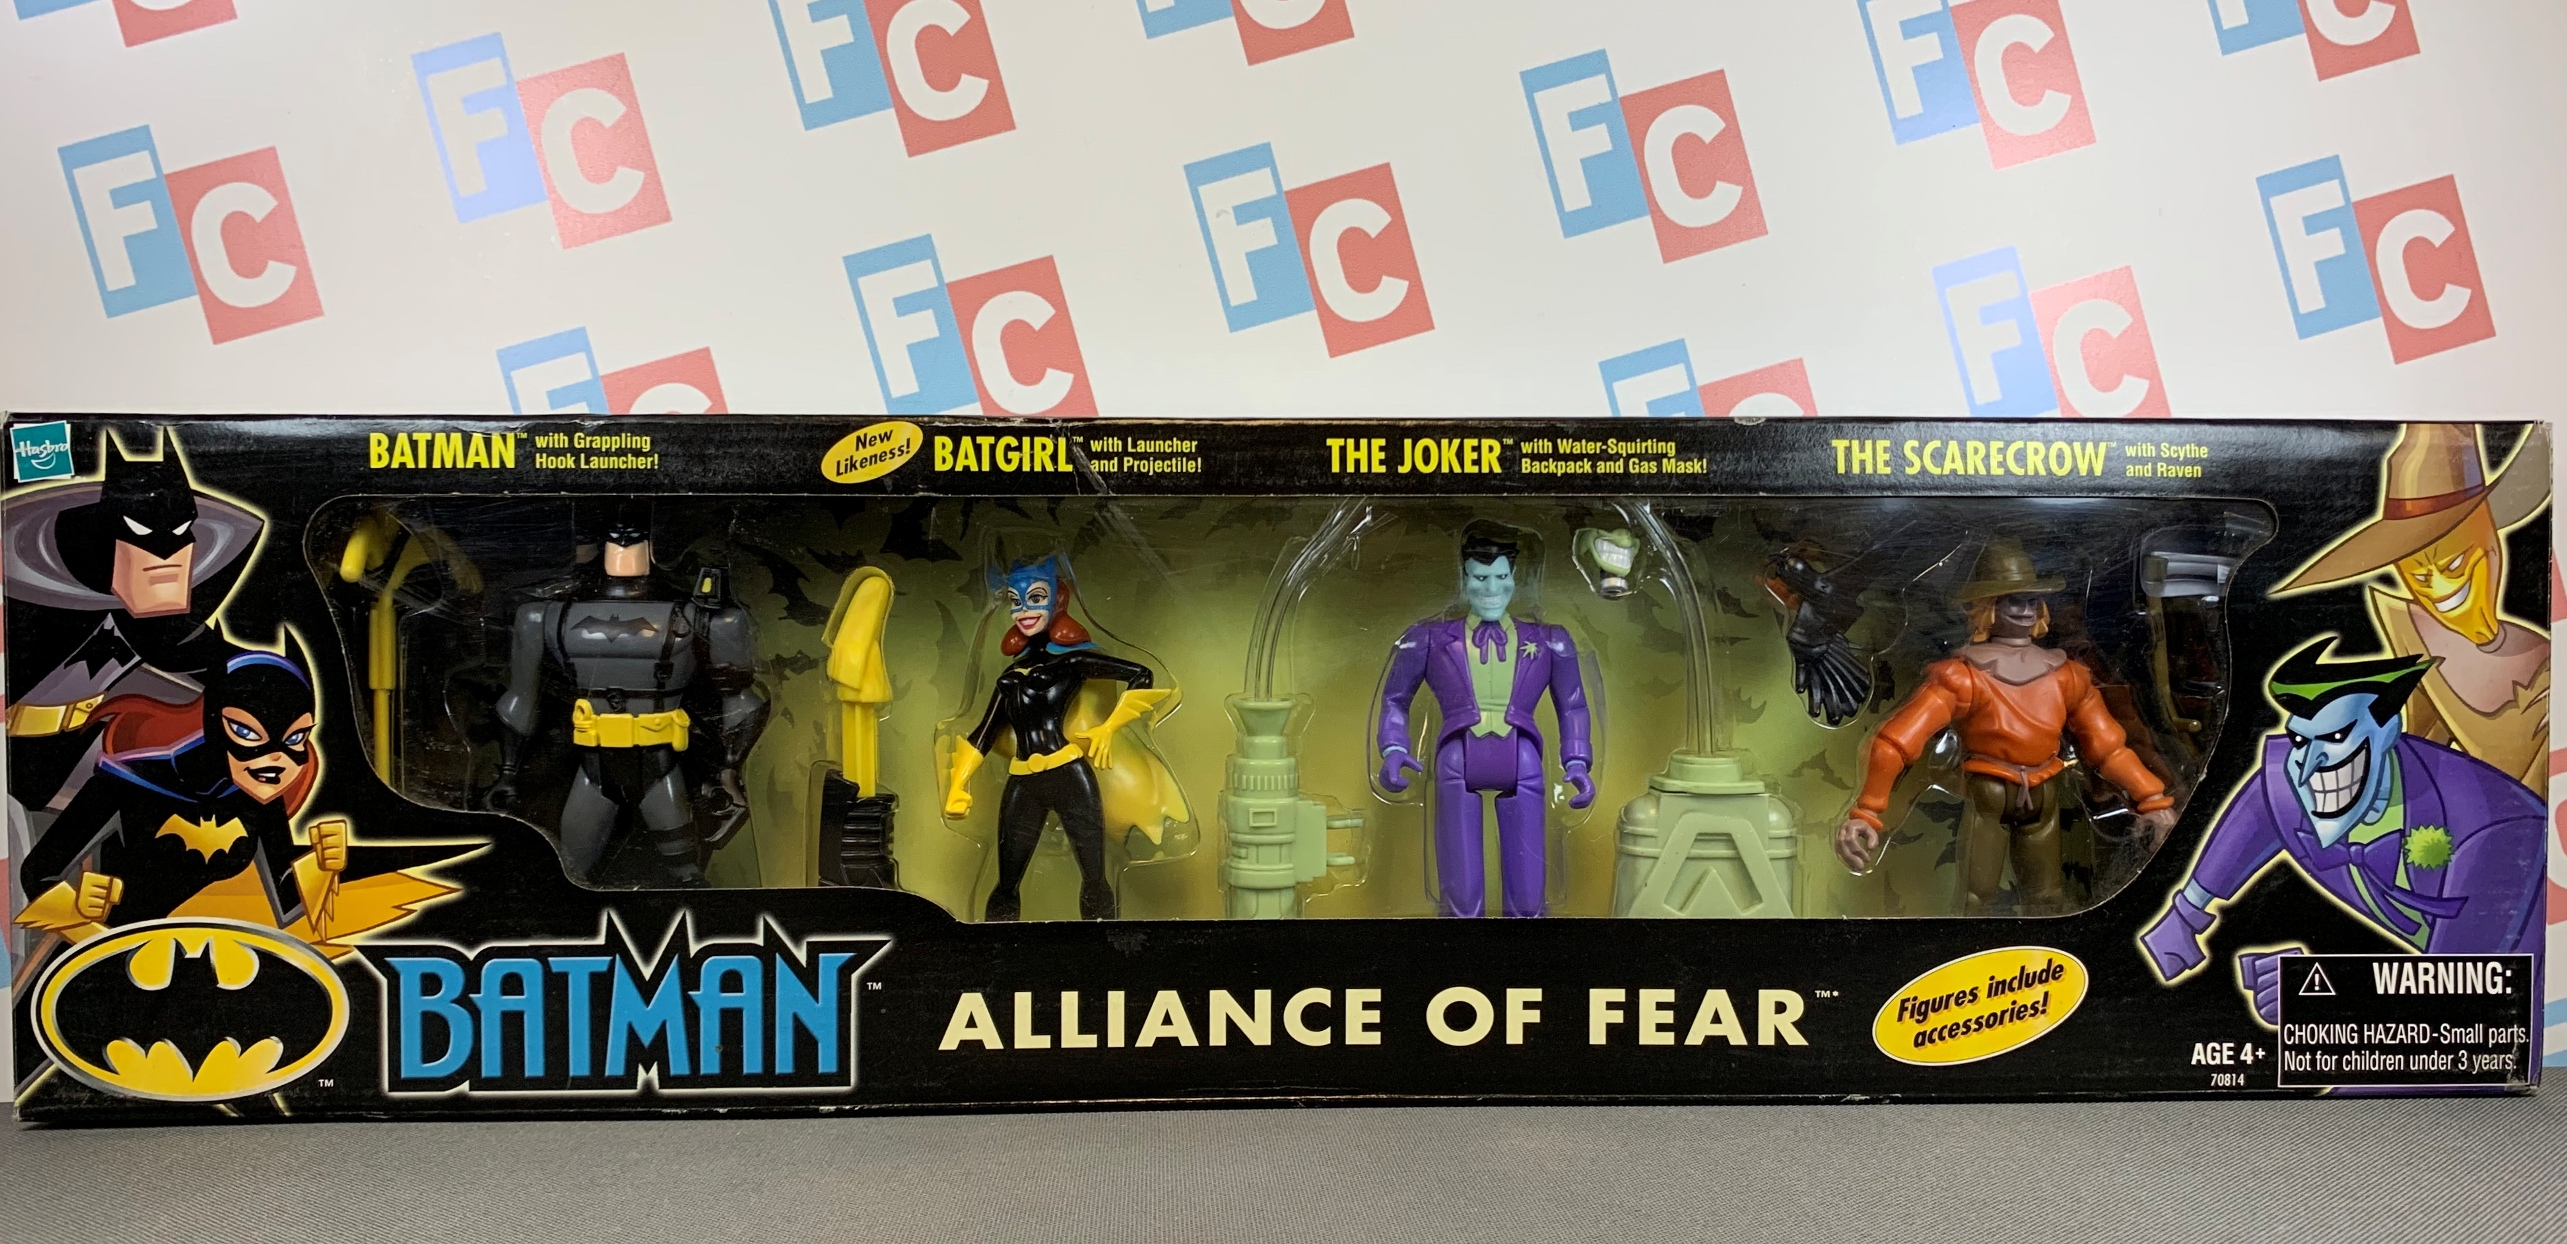 Alliance of Fear (Batman, Batgirl, The Joker, The Scarecrow)